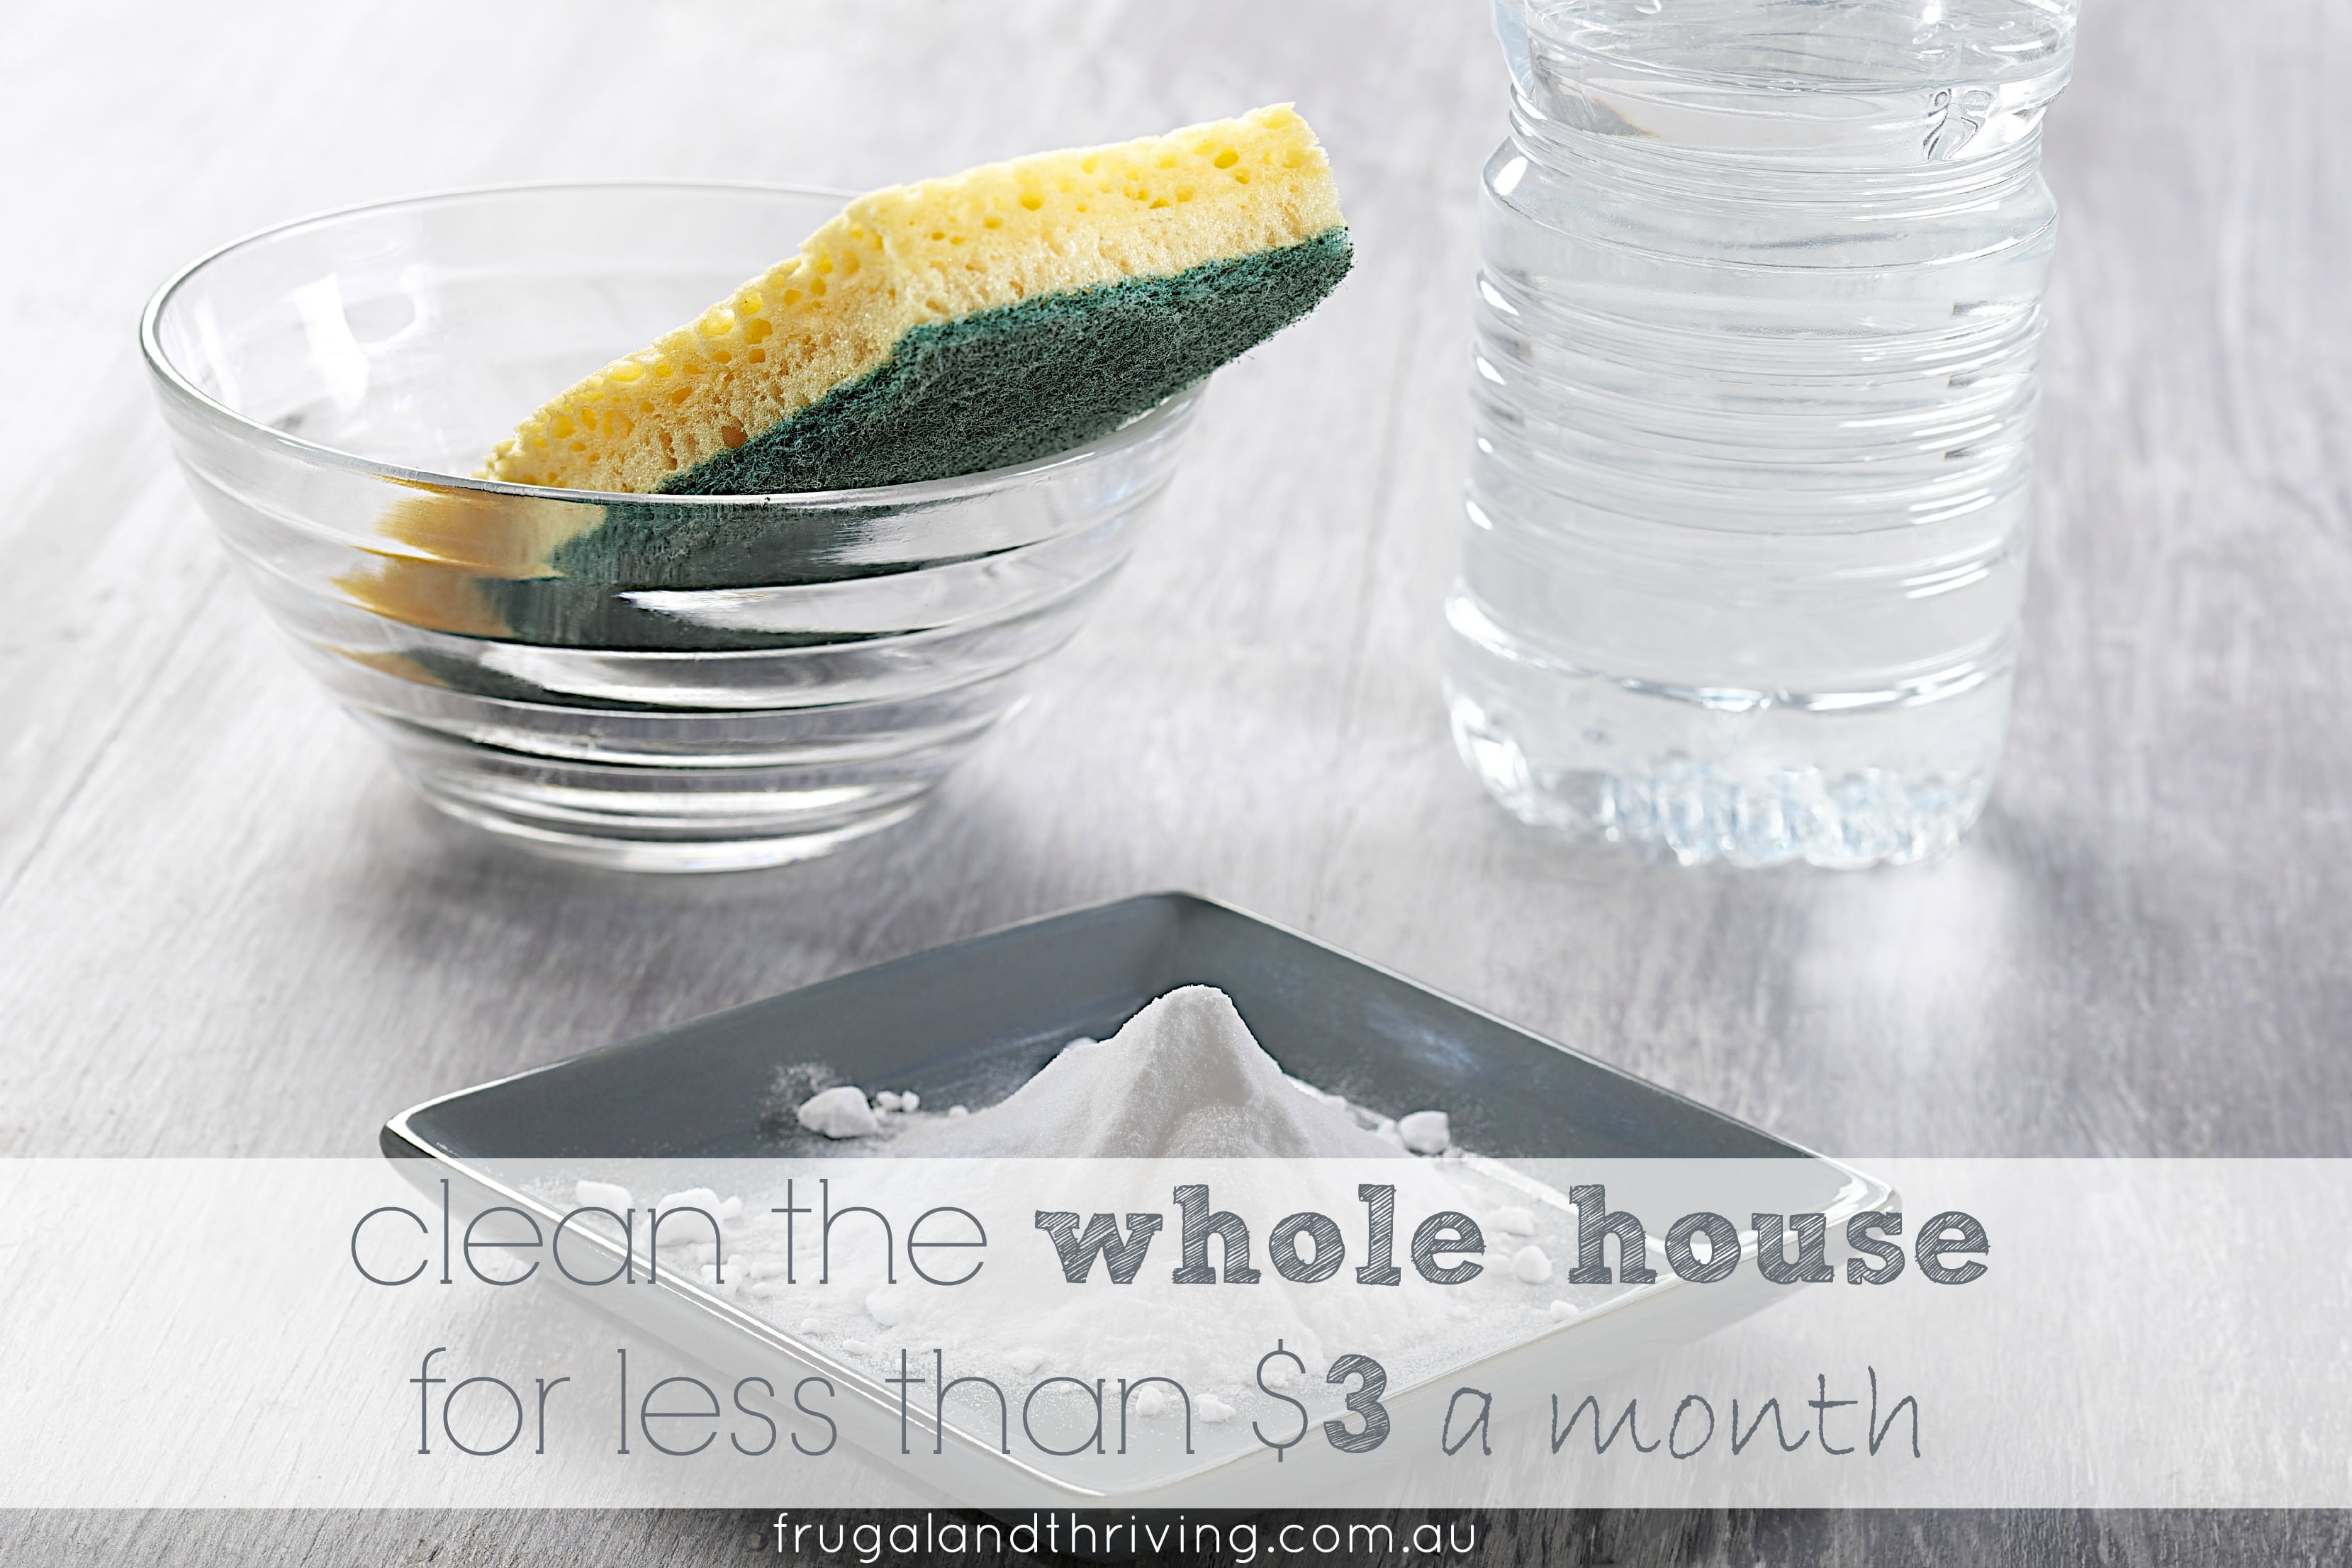 clean the whole house for less than $3 a month